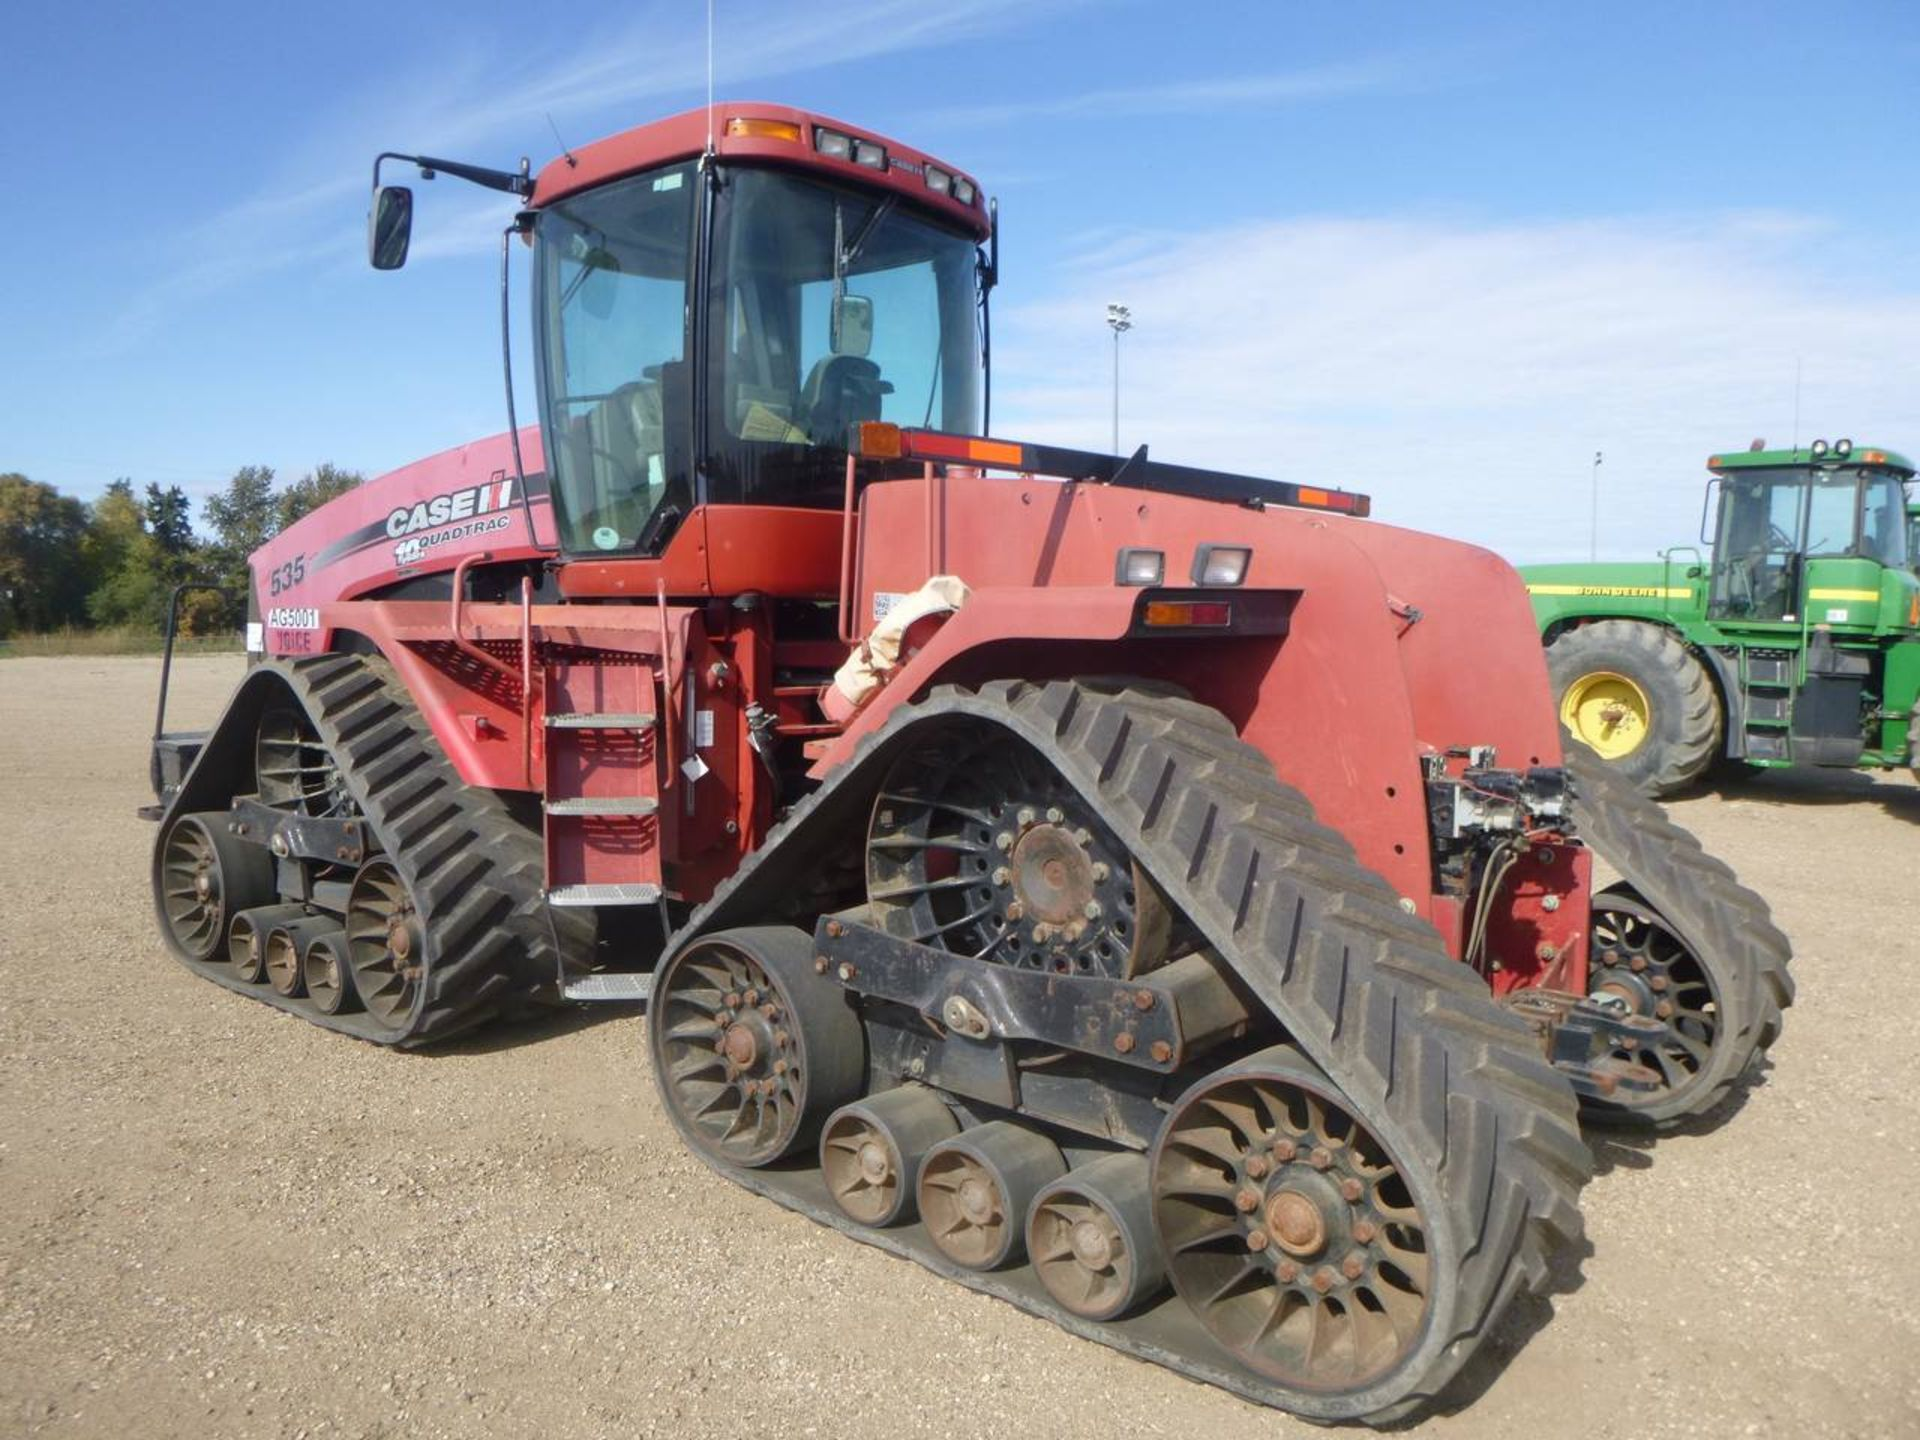 2008 Case IH 535 Tractor - Image 6 of 9